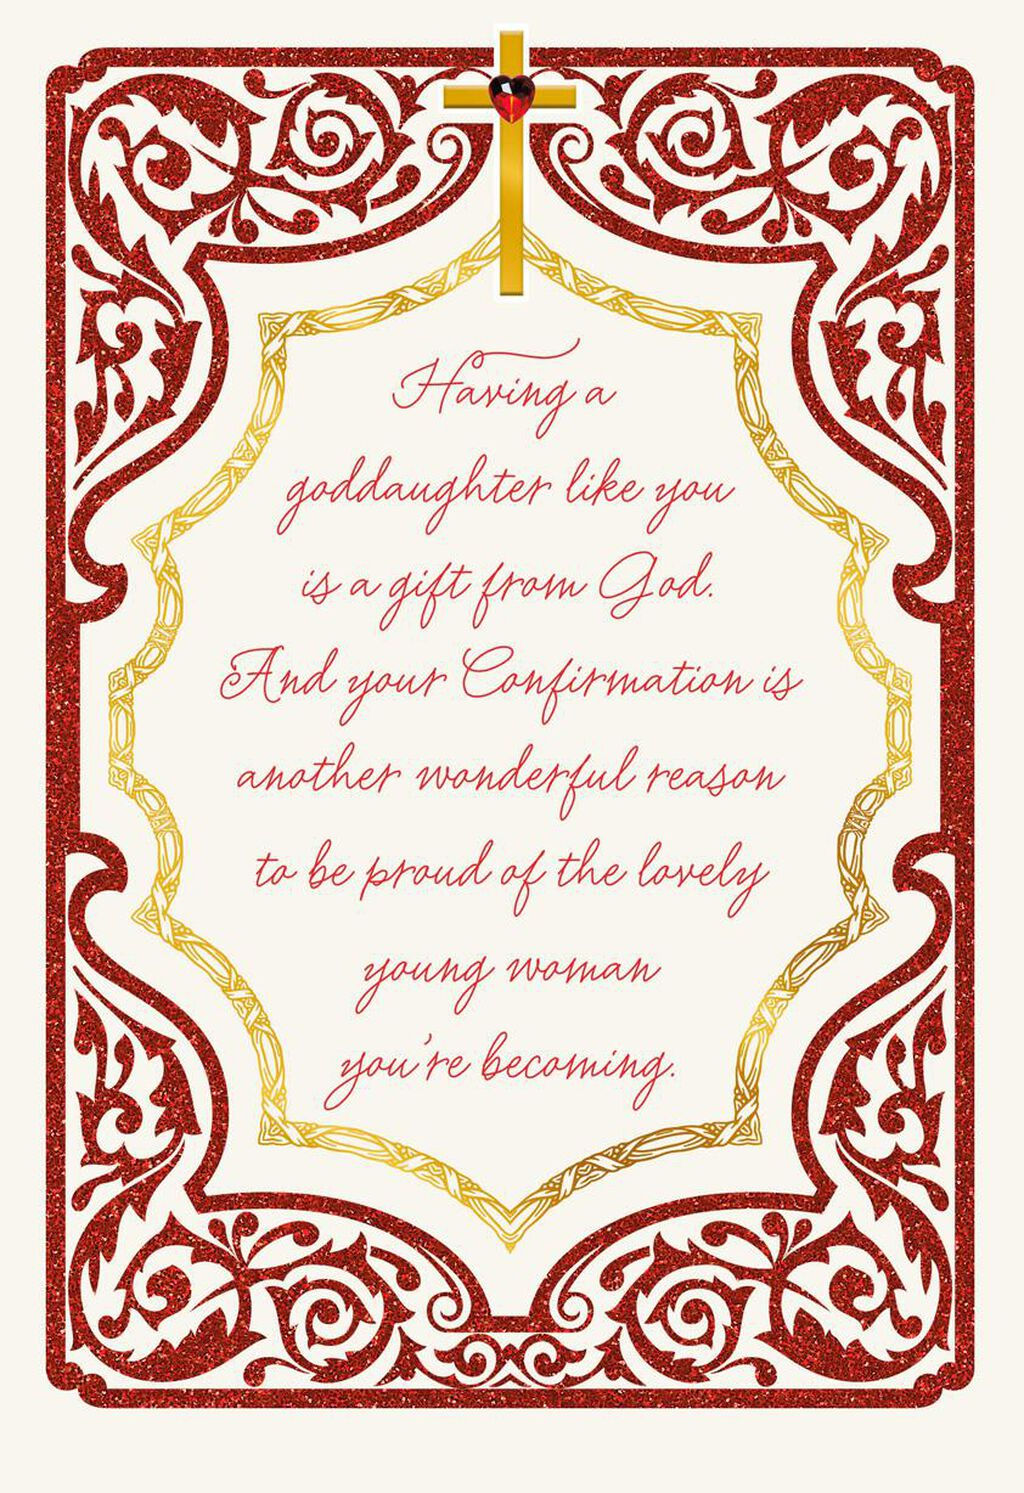 With Love And Prayers Religious Confirmation Card For Goddaughter